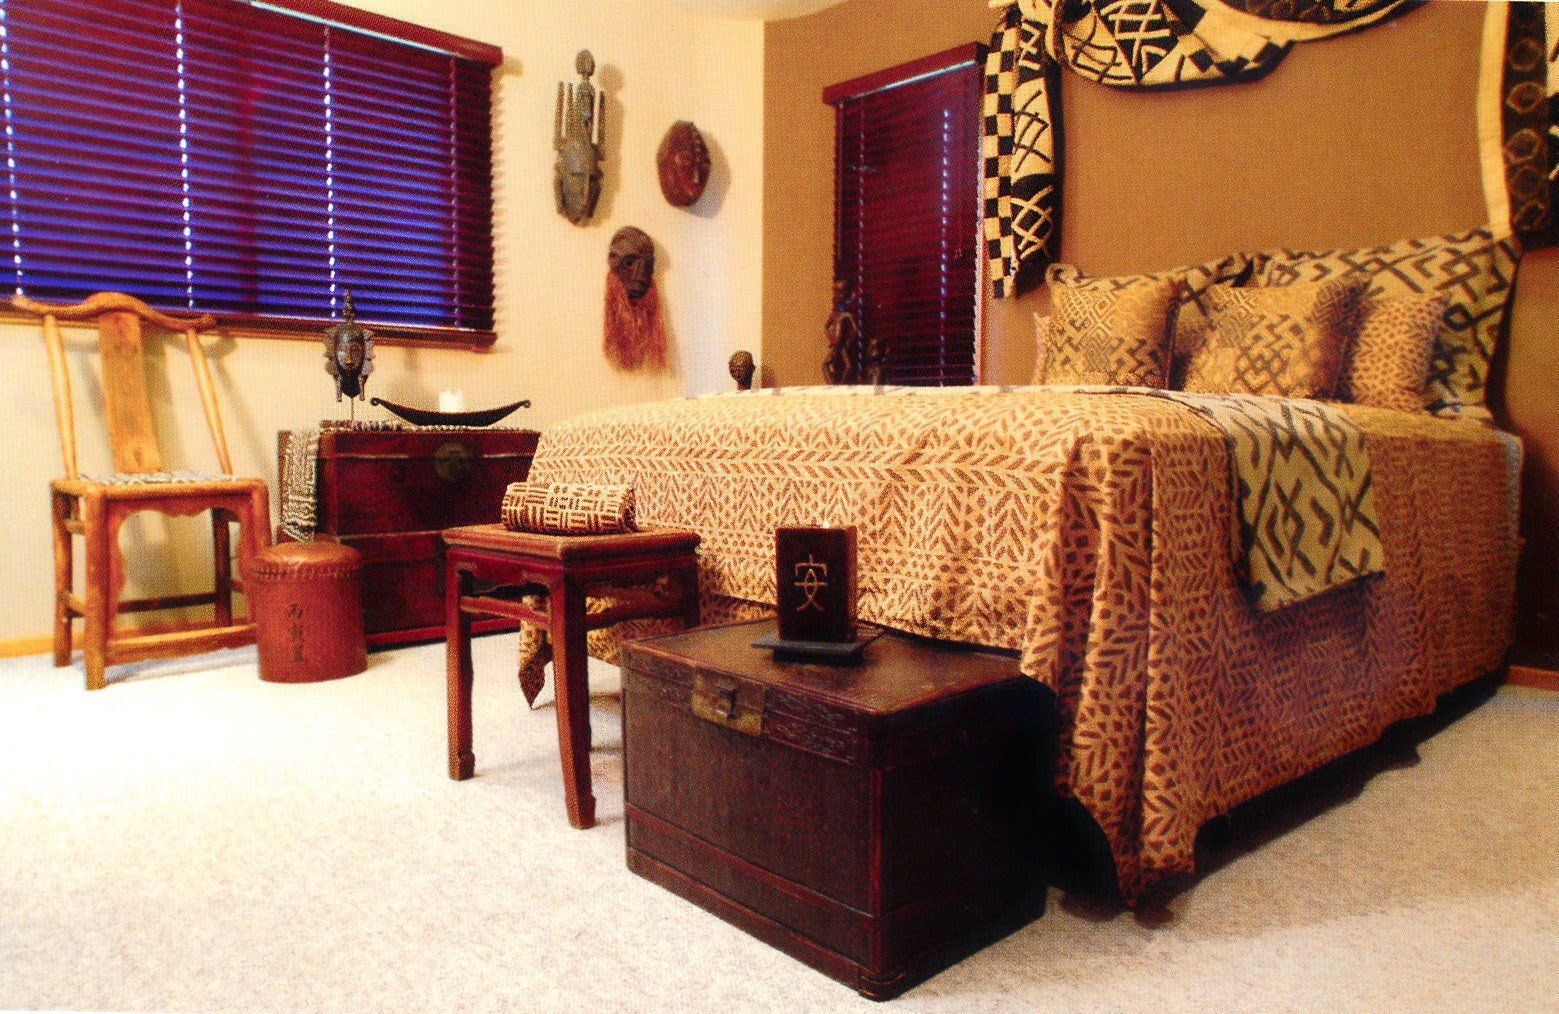 Foundation dezin decor bedroom design in african way for Design of decoration